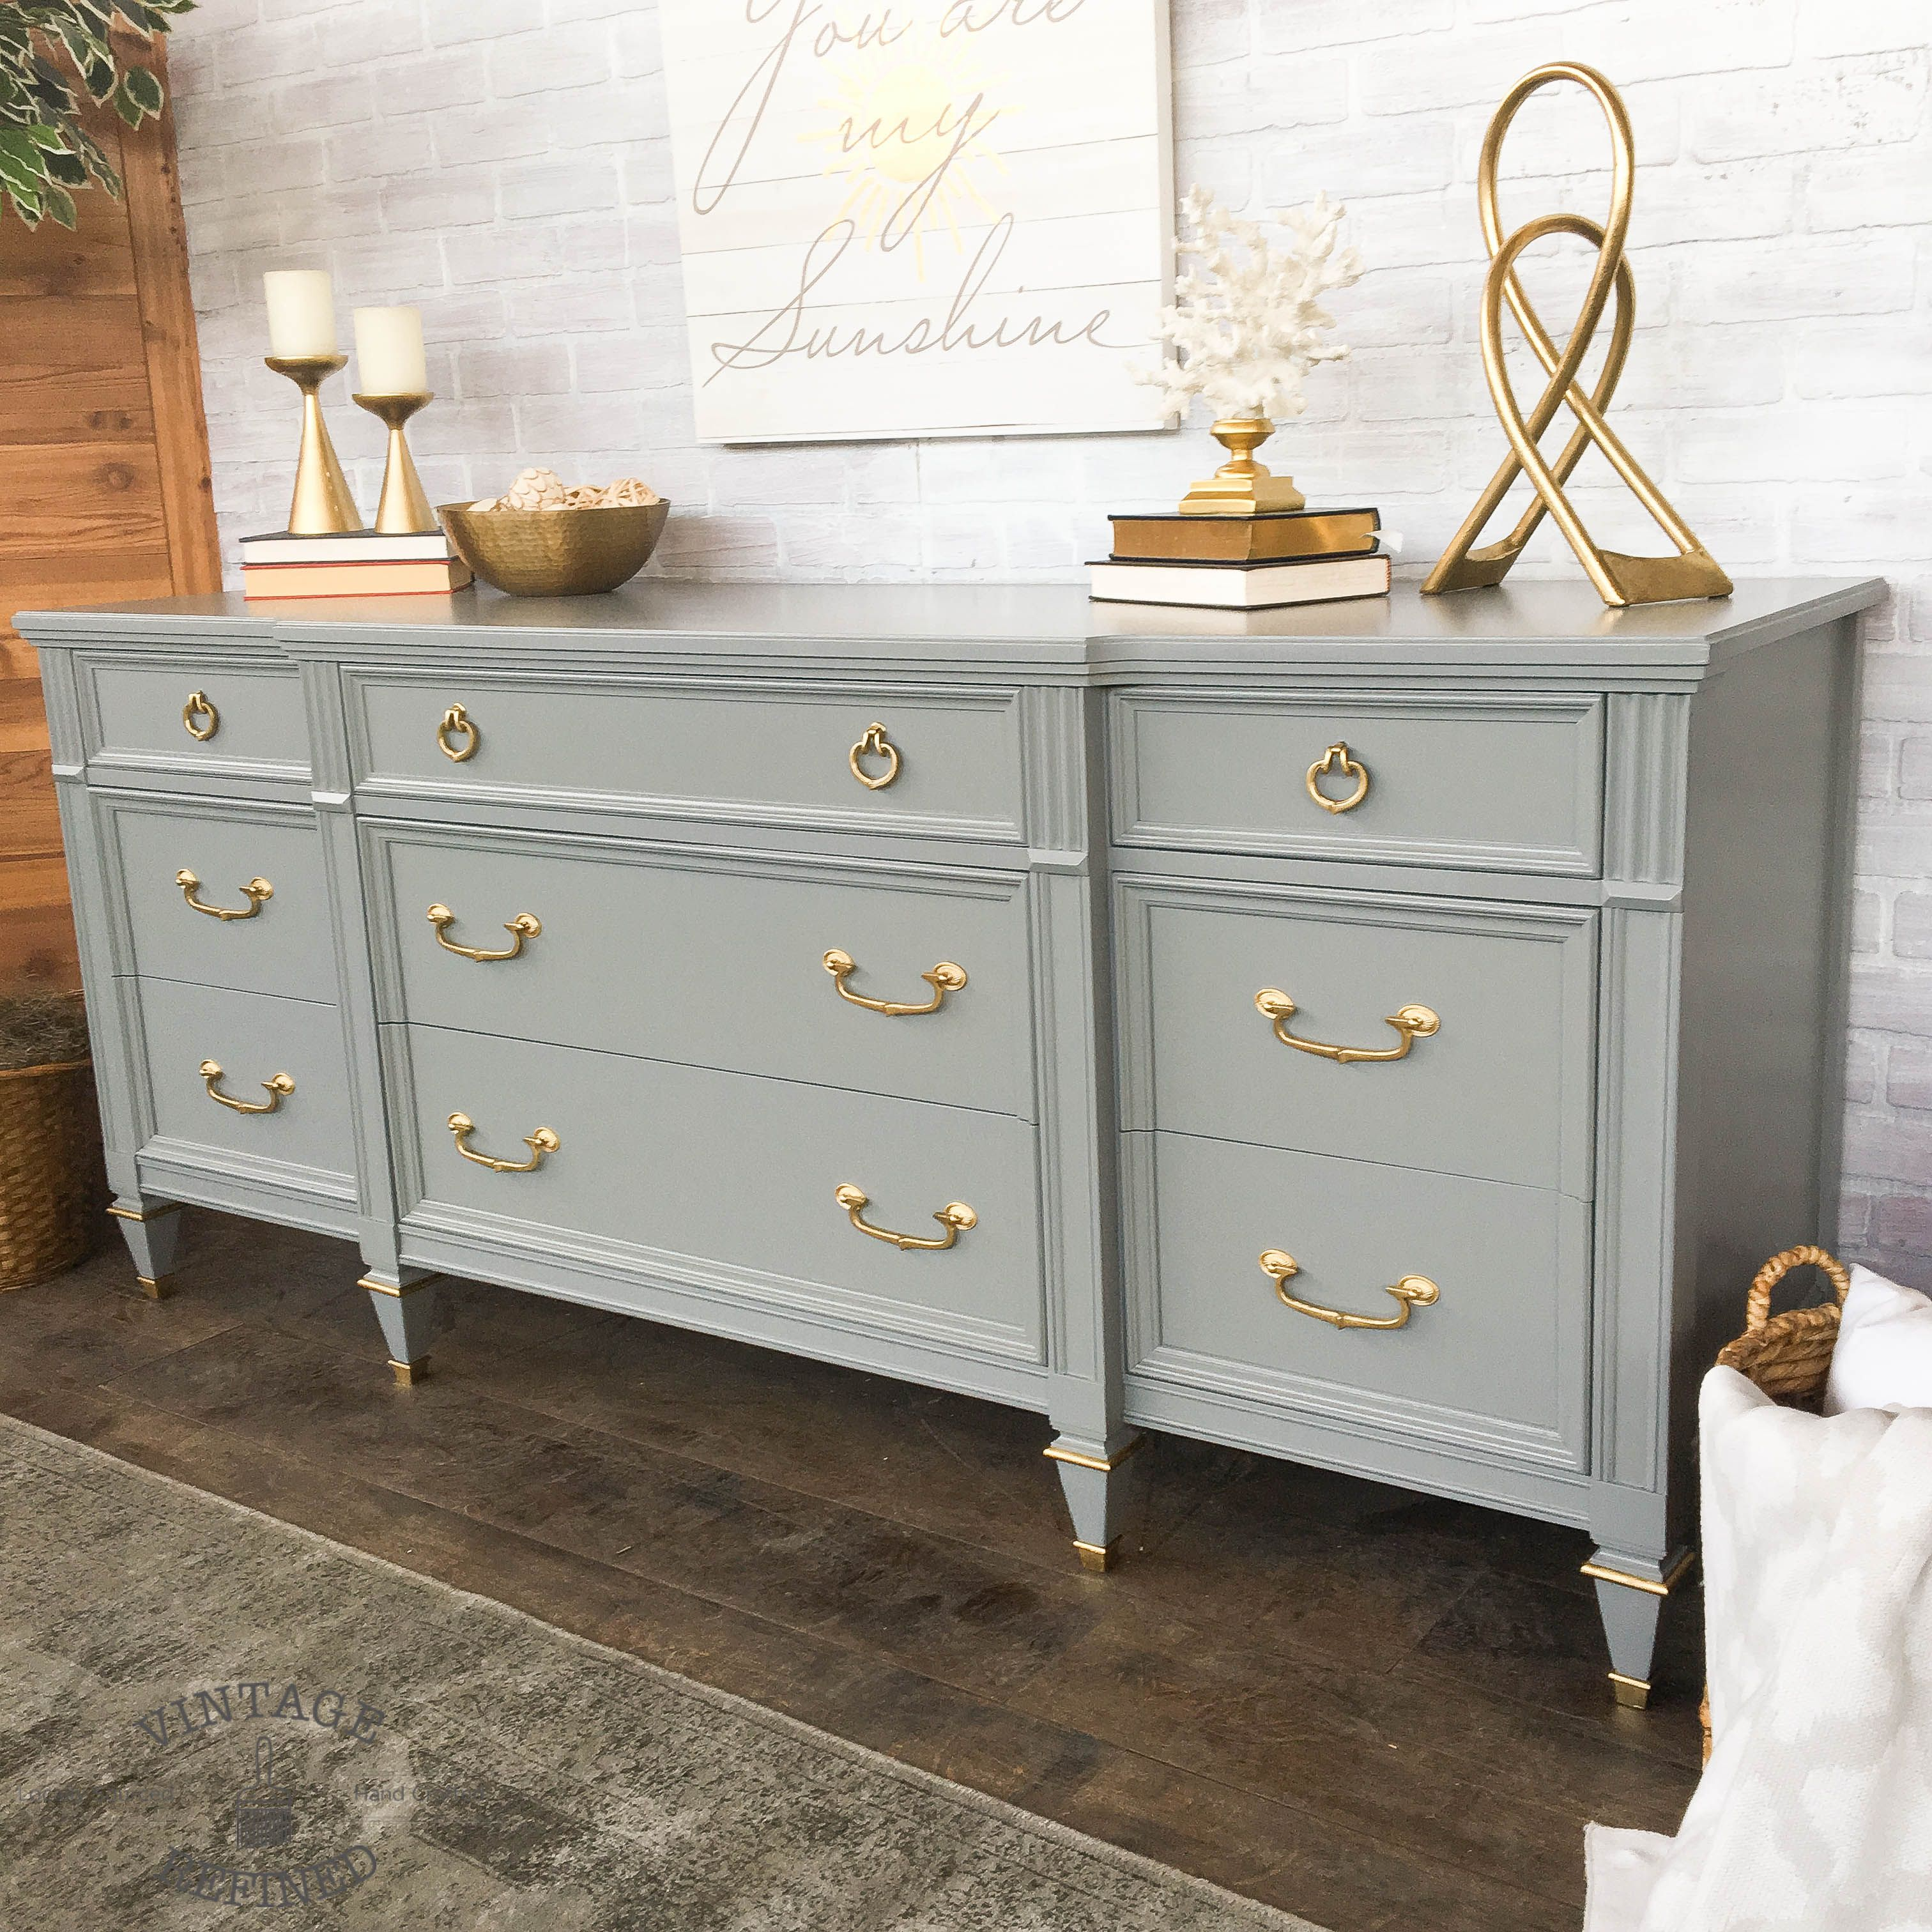 grey painted chairs best desk for back pain dresser with gold hardware would make an awesome base double sink vanity